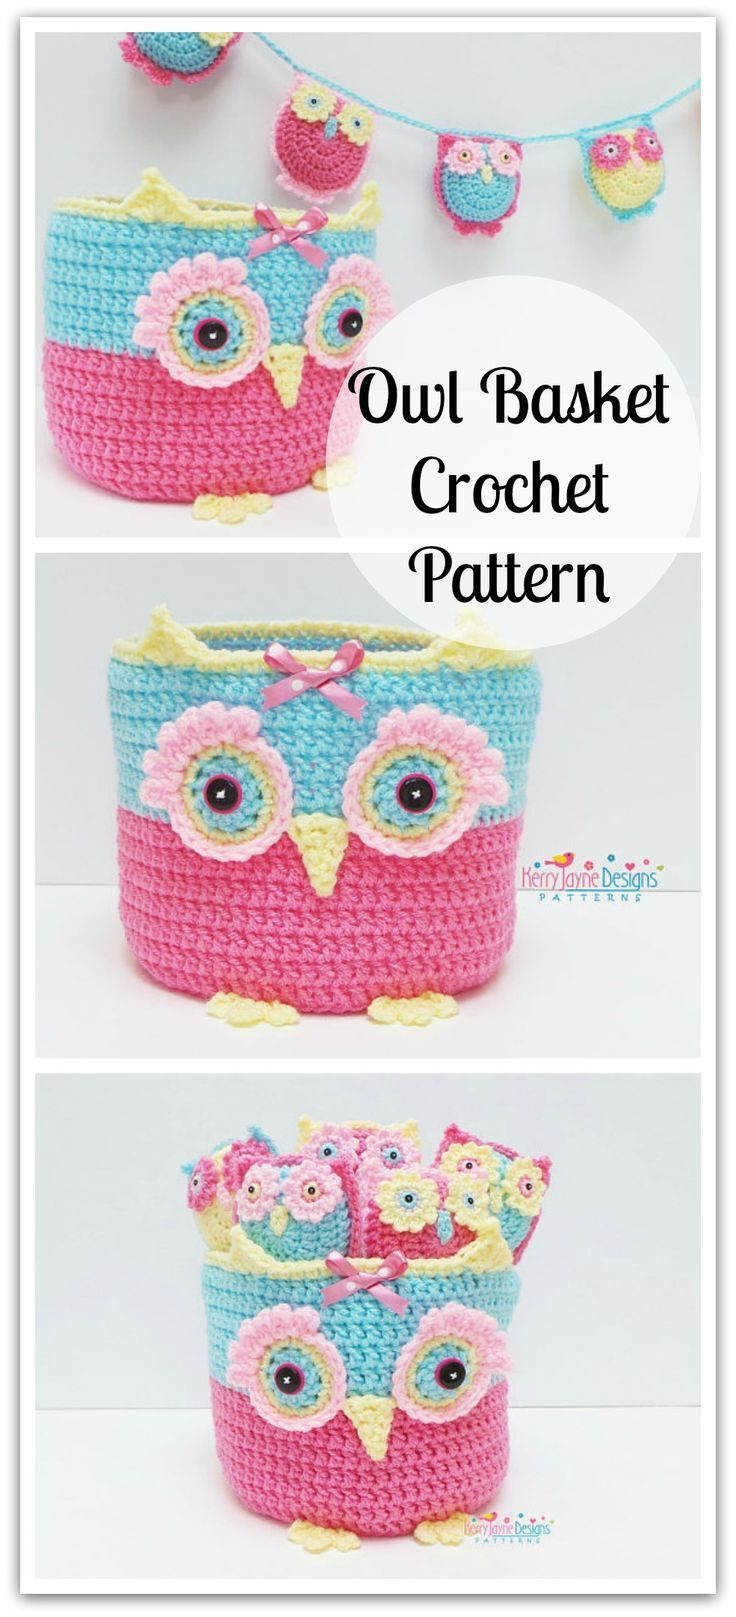 Owl basket family crochet pattern crochet owl basket pattern owl basket family crochet pattern crochet owl basket pattern little owls and bunting crochet bankloansurffo Images